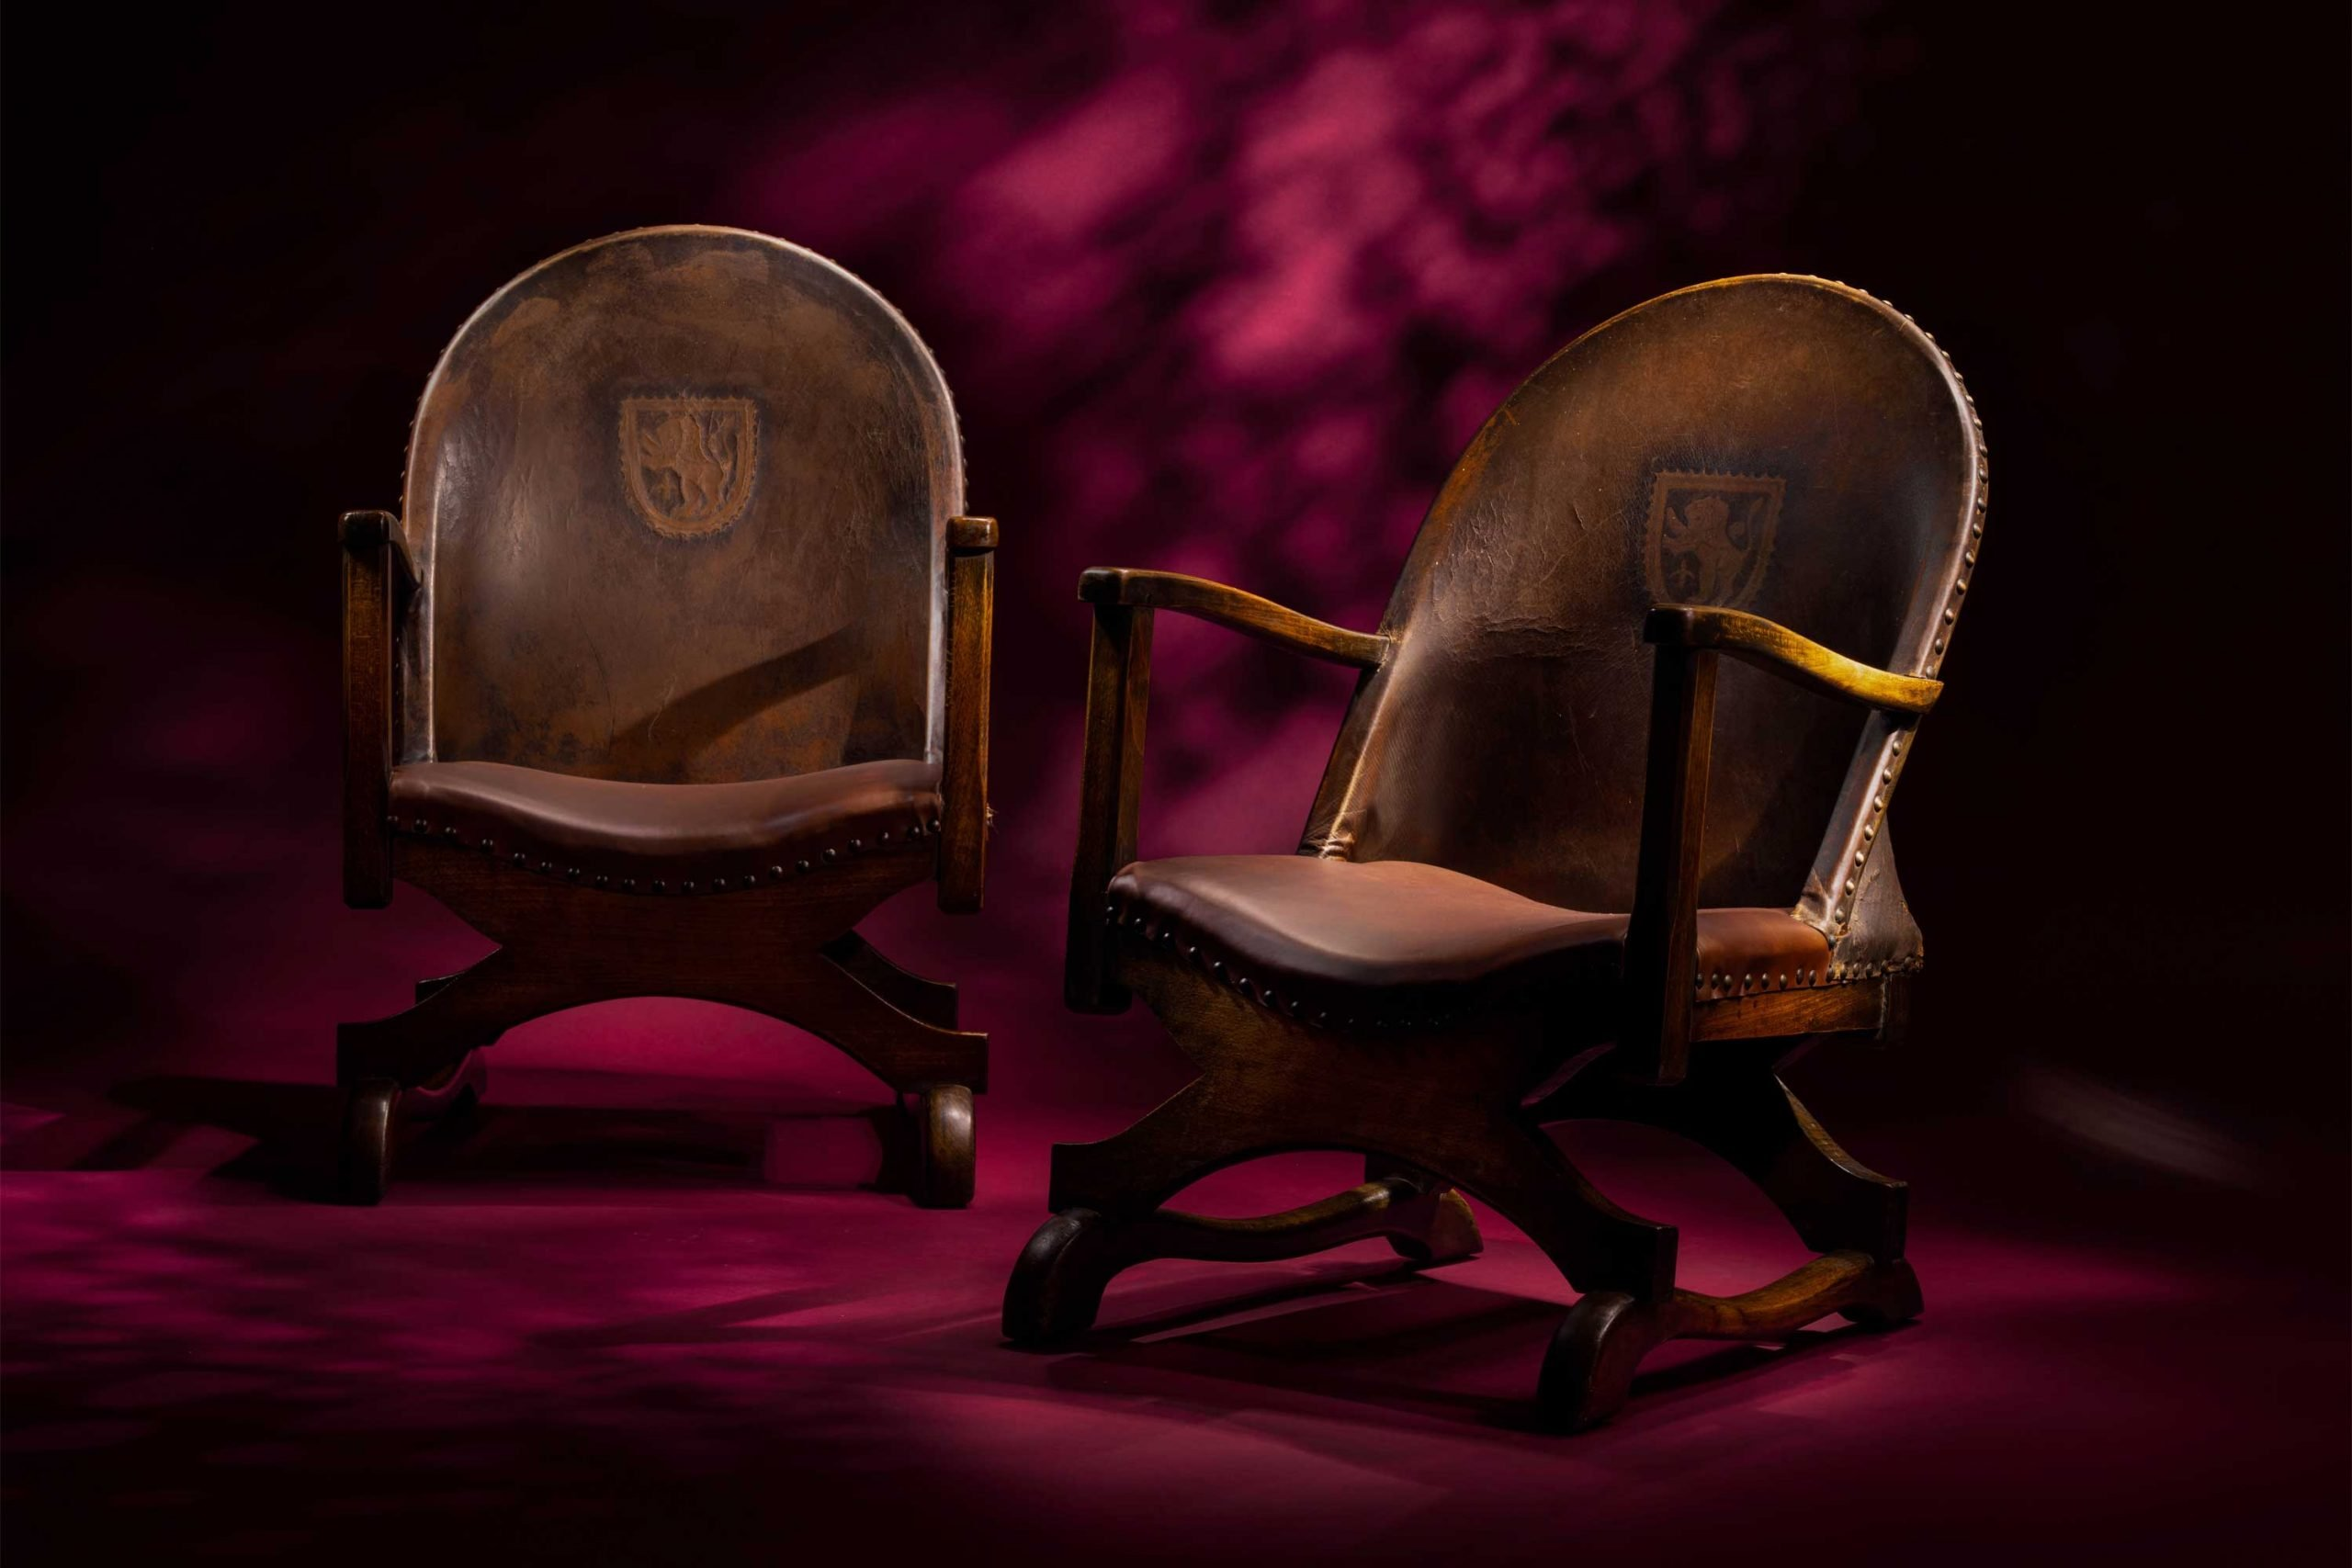 Spanish Heraldic Crested Leather Chairs